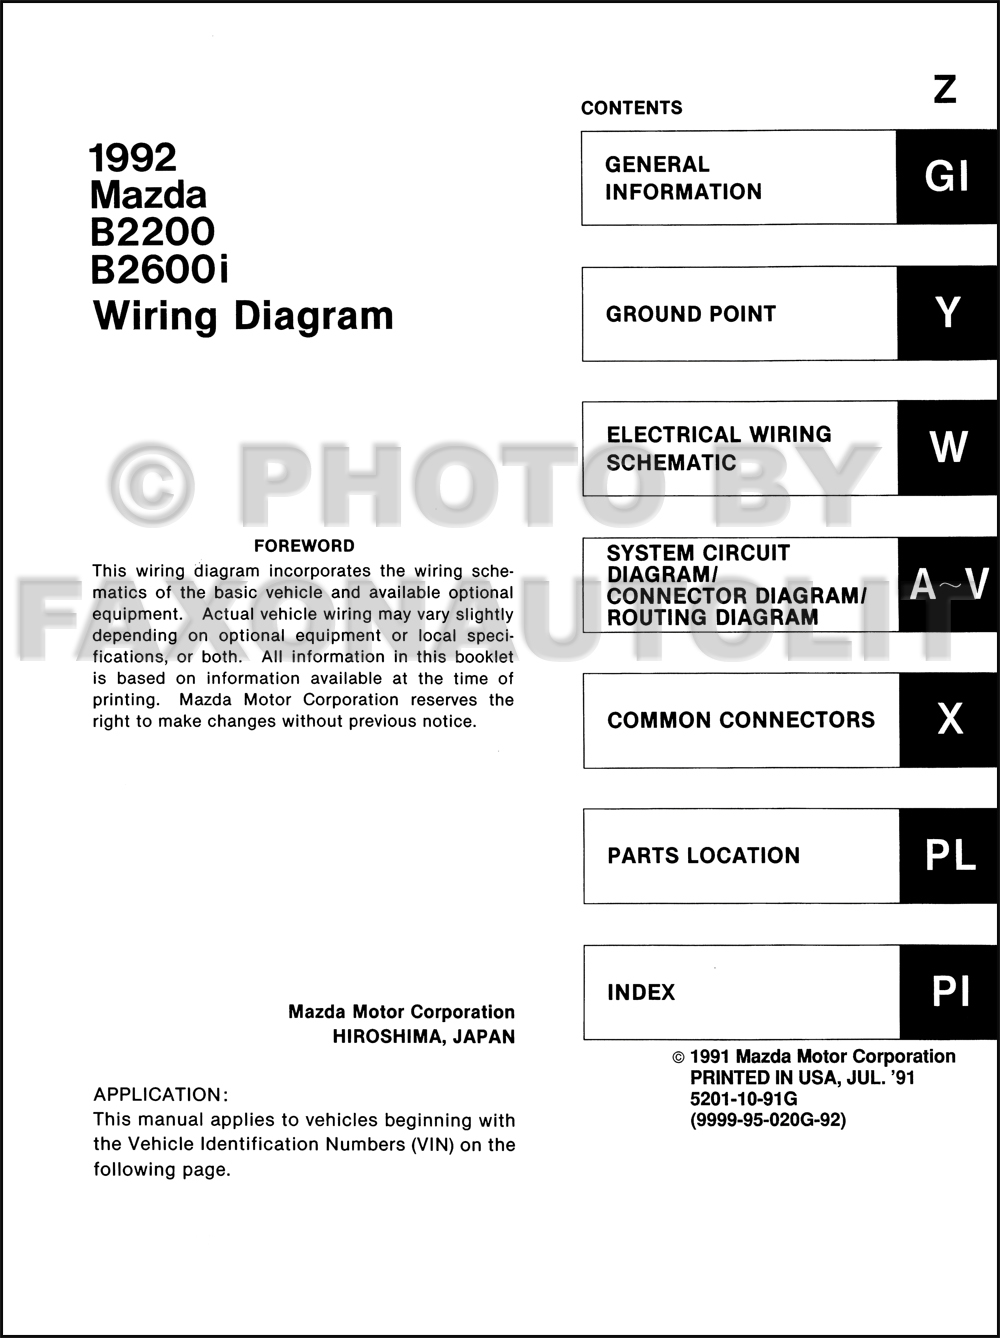 1992MazdaB2200B2600iOWD TOC 1992 mazda b2200 b2600i pickup truck wiring diagram manual original mazda b2200 wiring diagram at creativeand.co